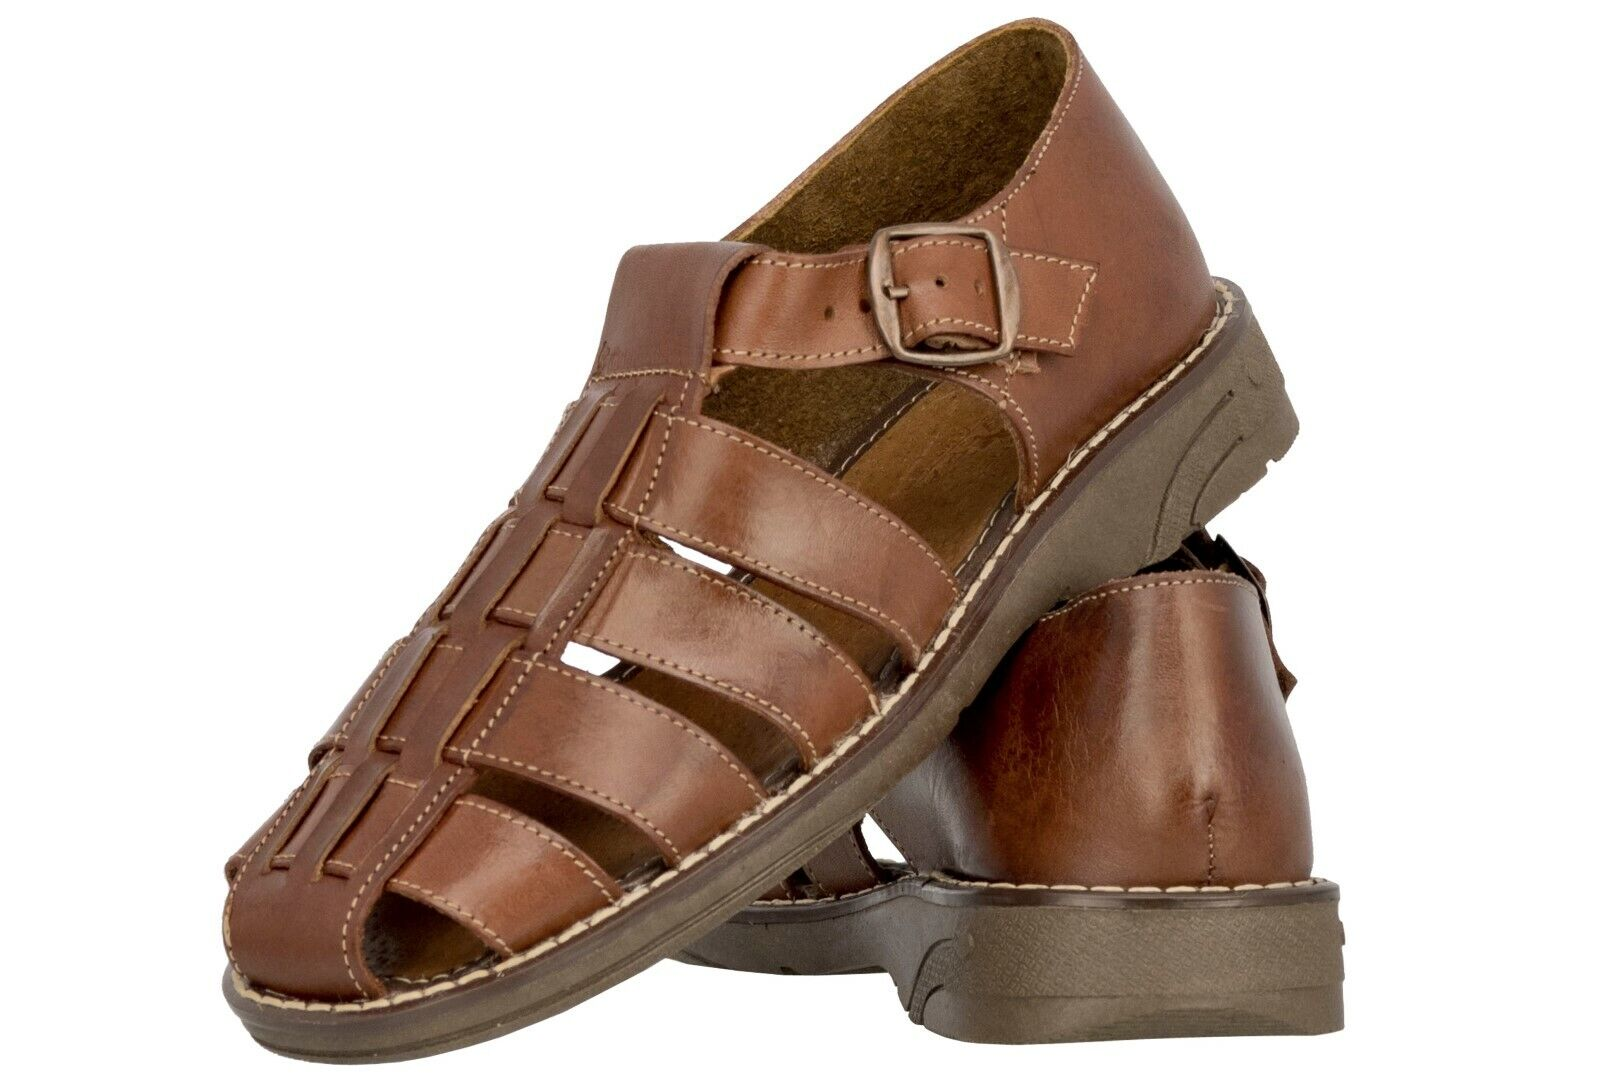 Mens Genuine Cognac Brown Leather Mexican Huaraches Buckle Sandals Flip Flops